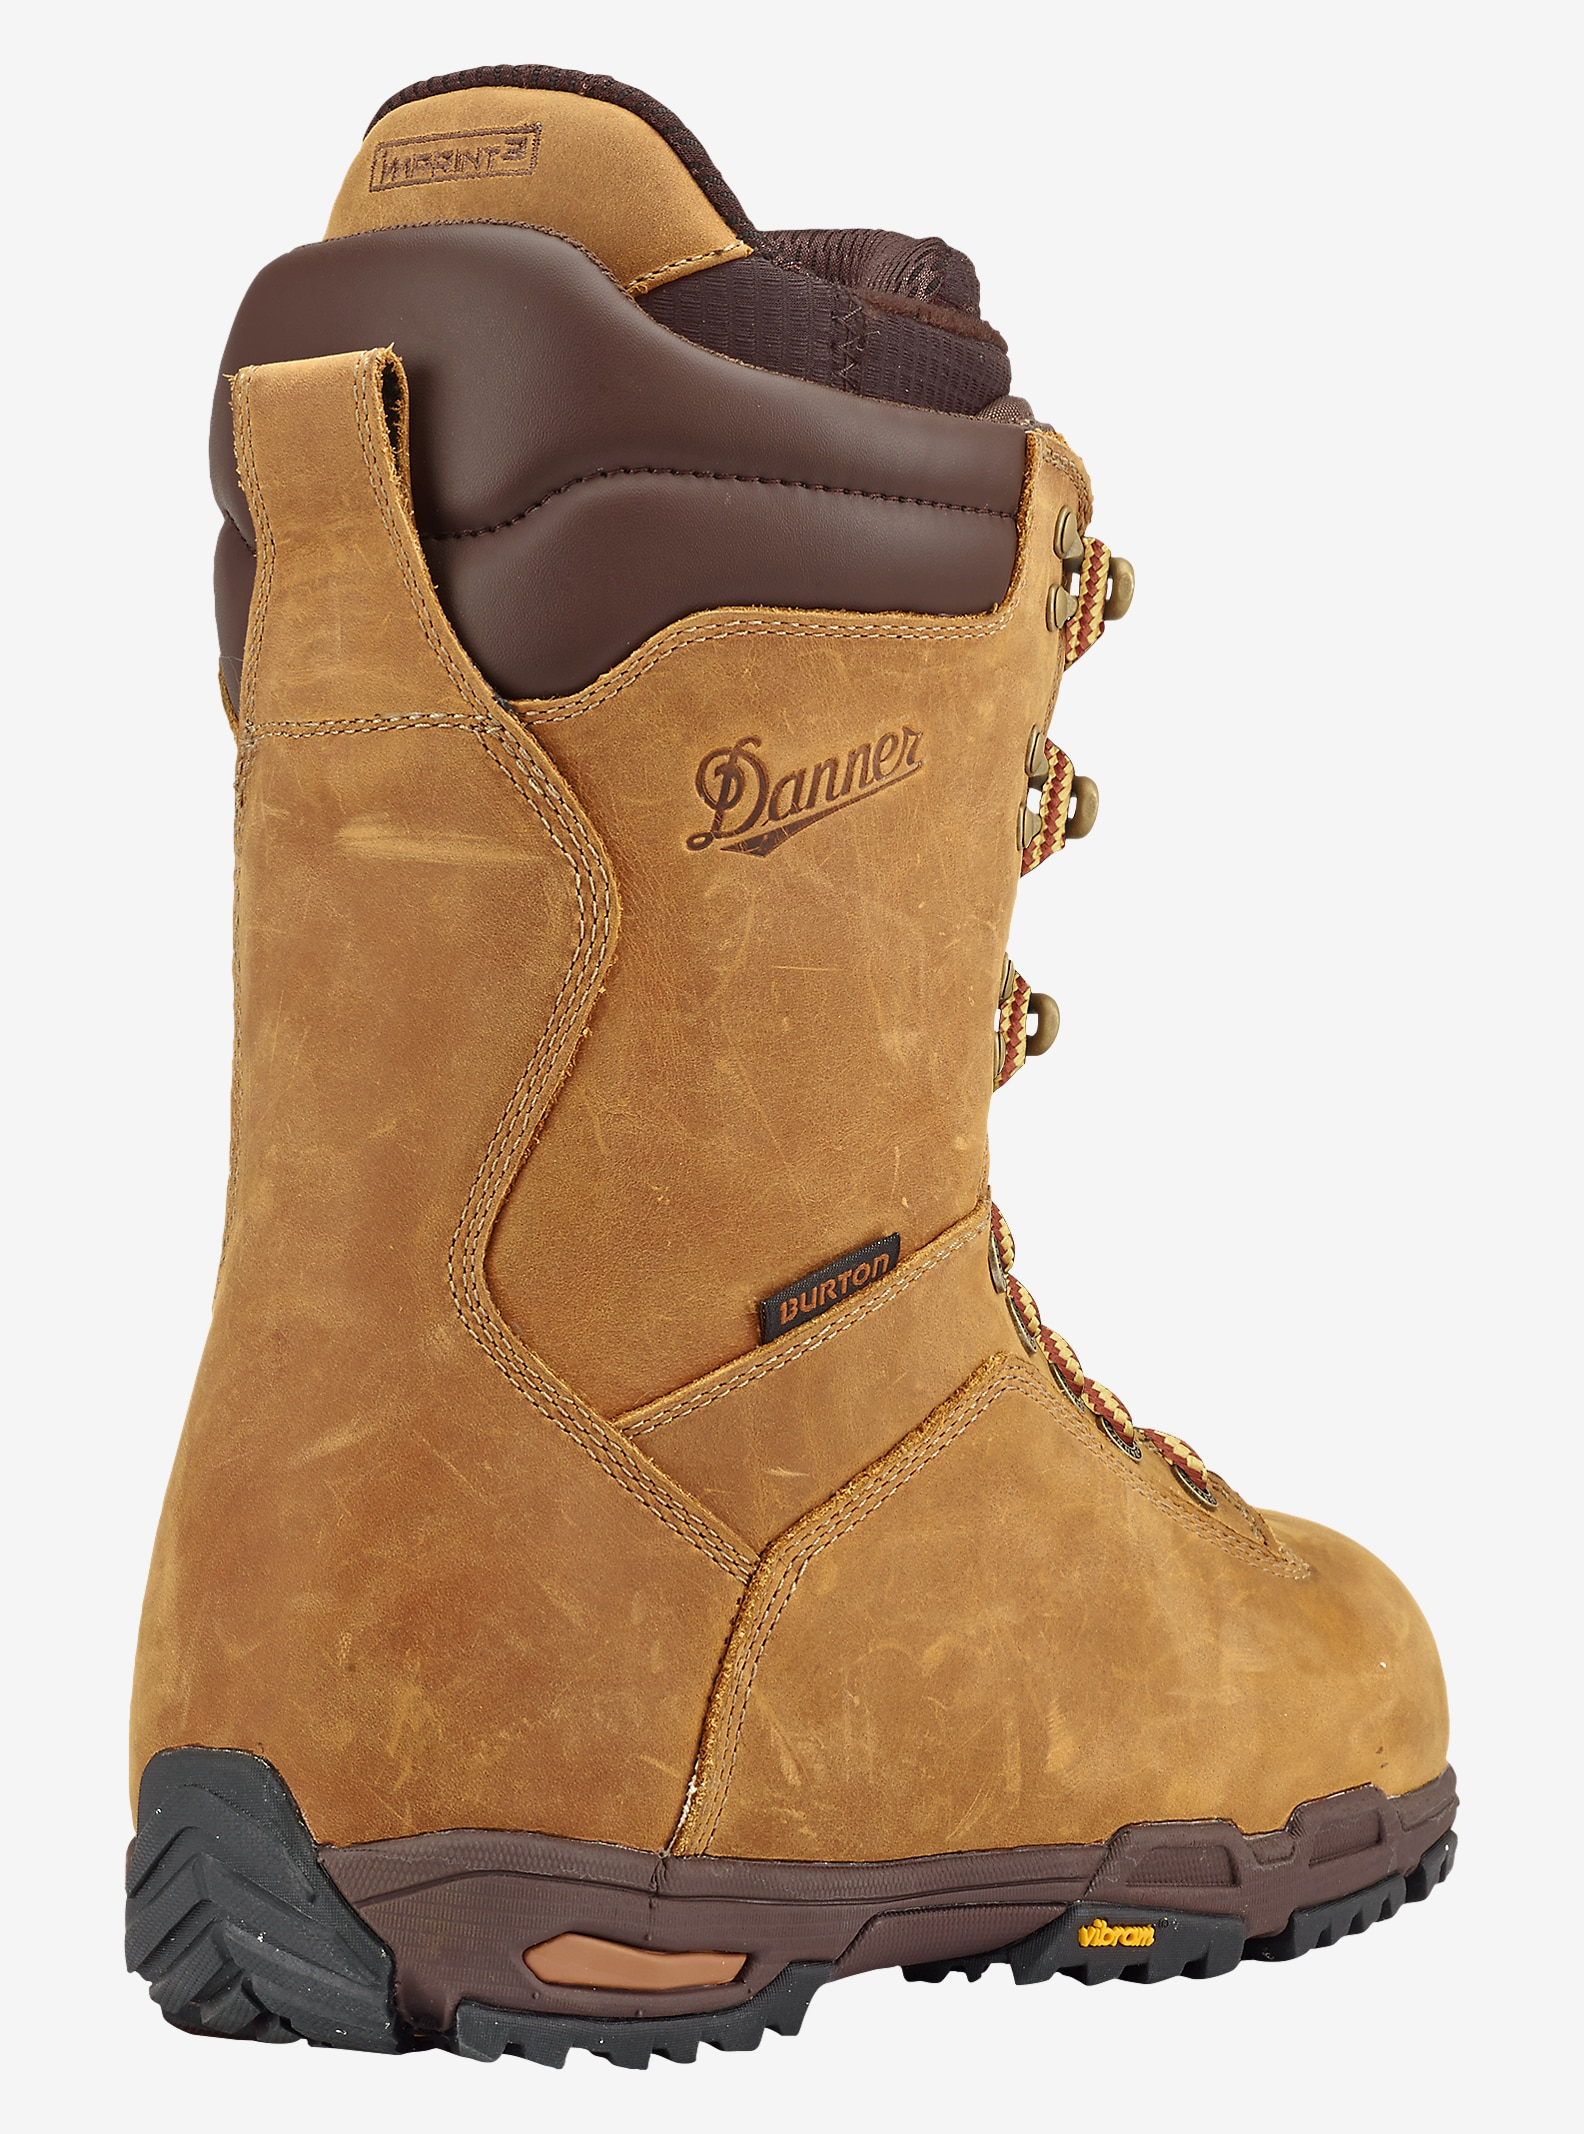 Burton x Danner Snowboard Boot shown in Distressed Brown